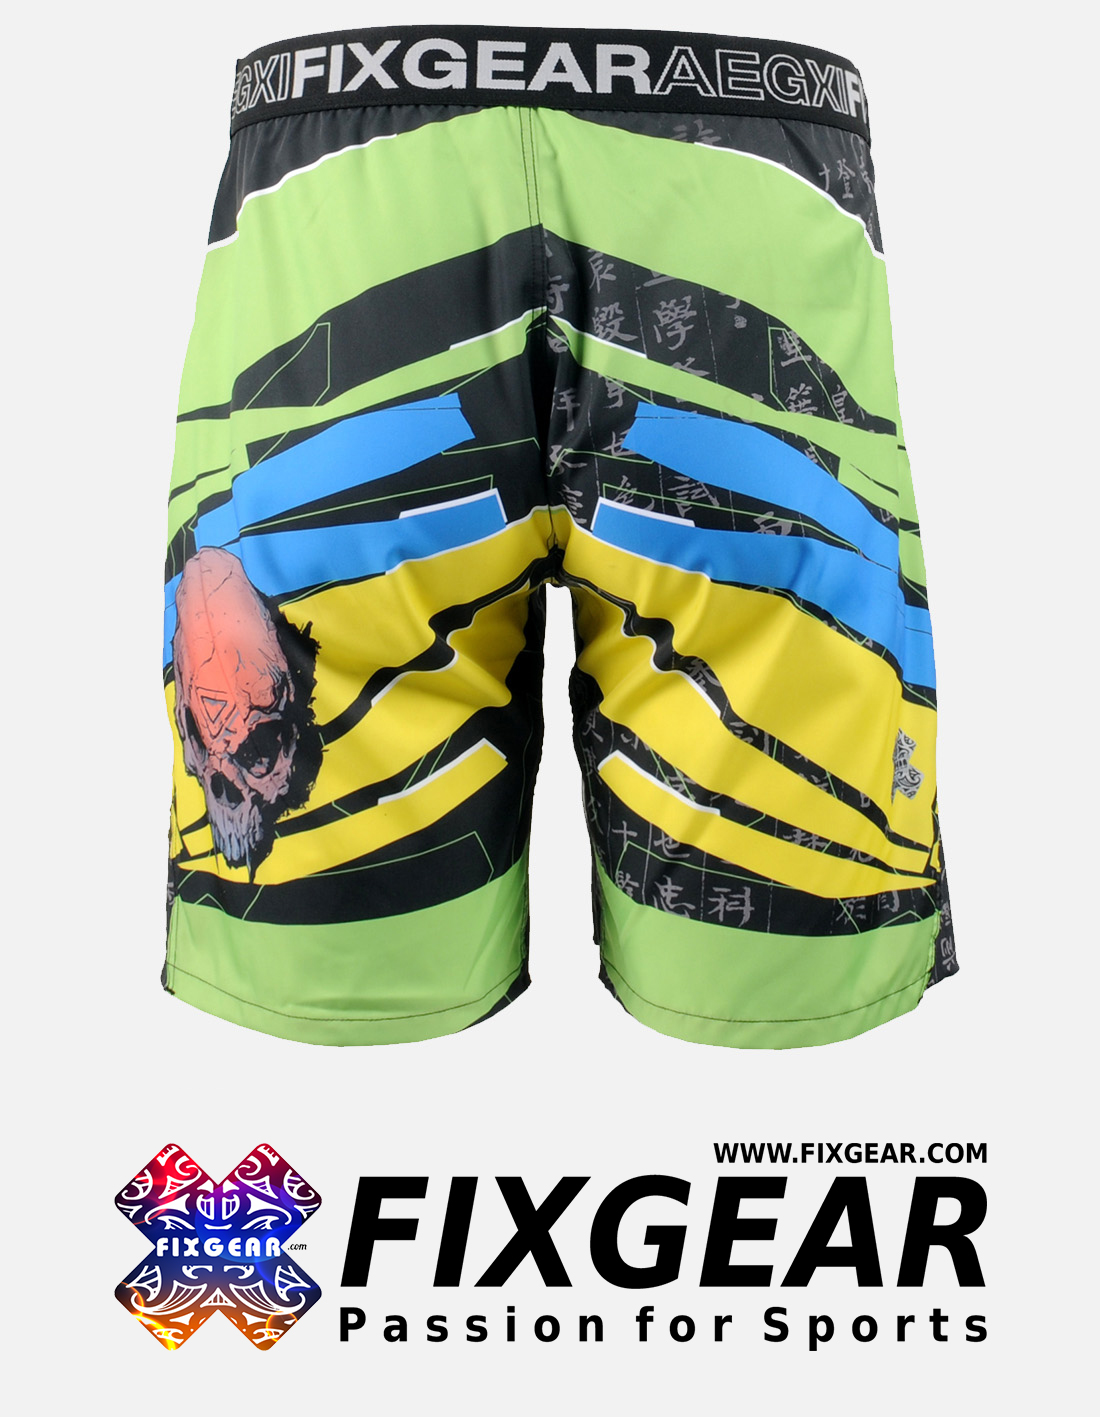 FIXGEAR FMS-74g Training Shorts